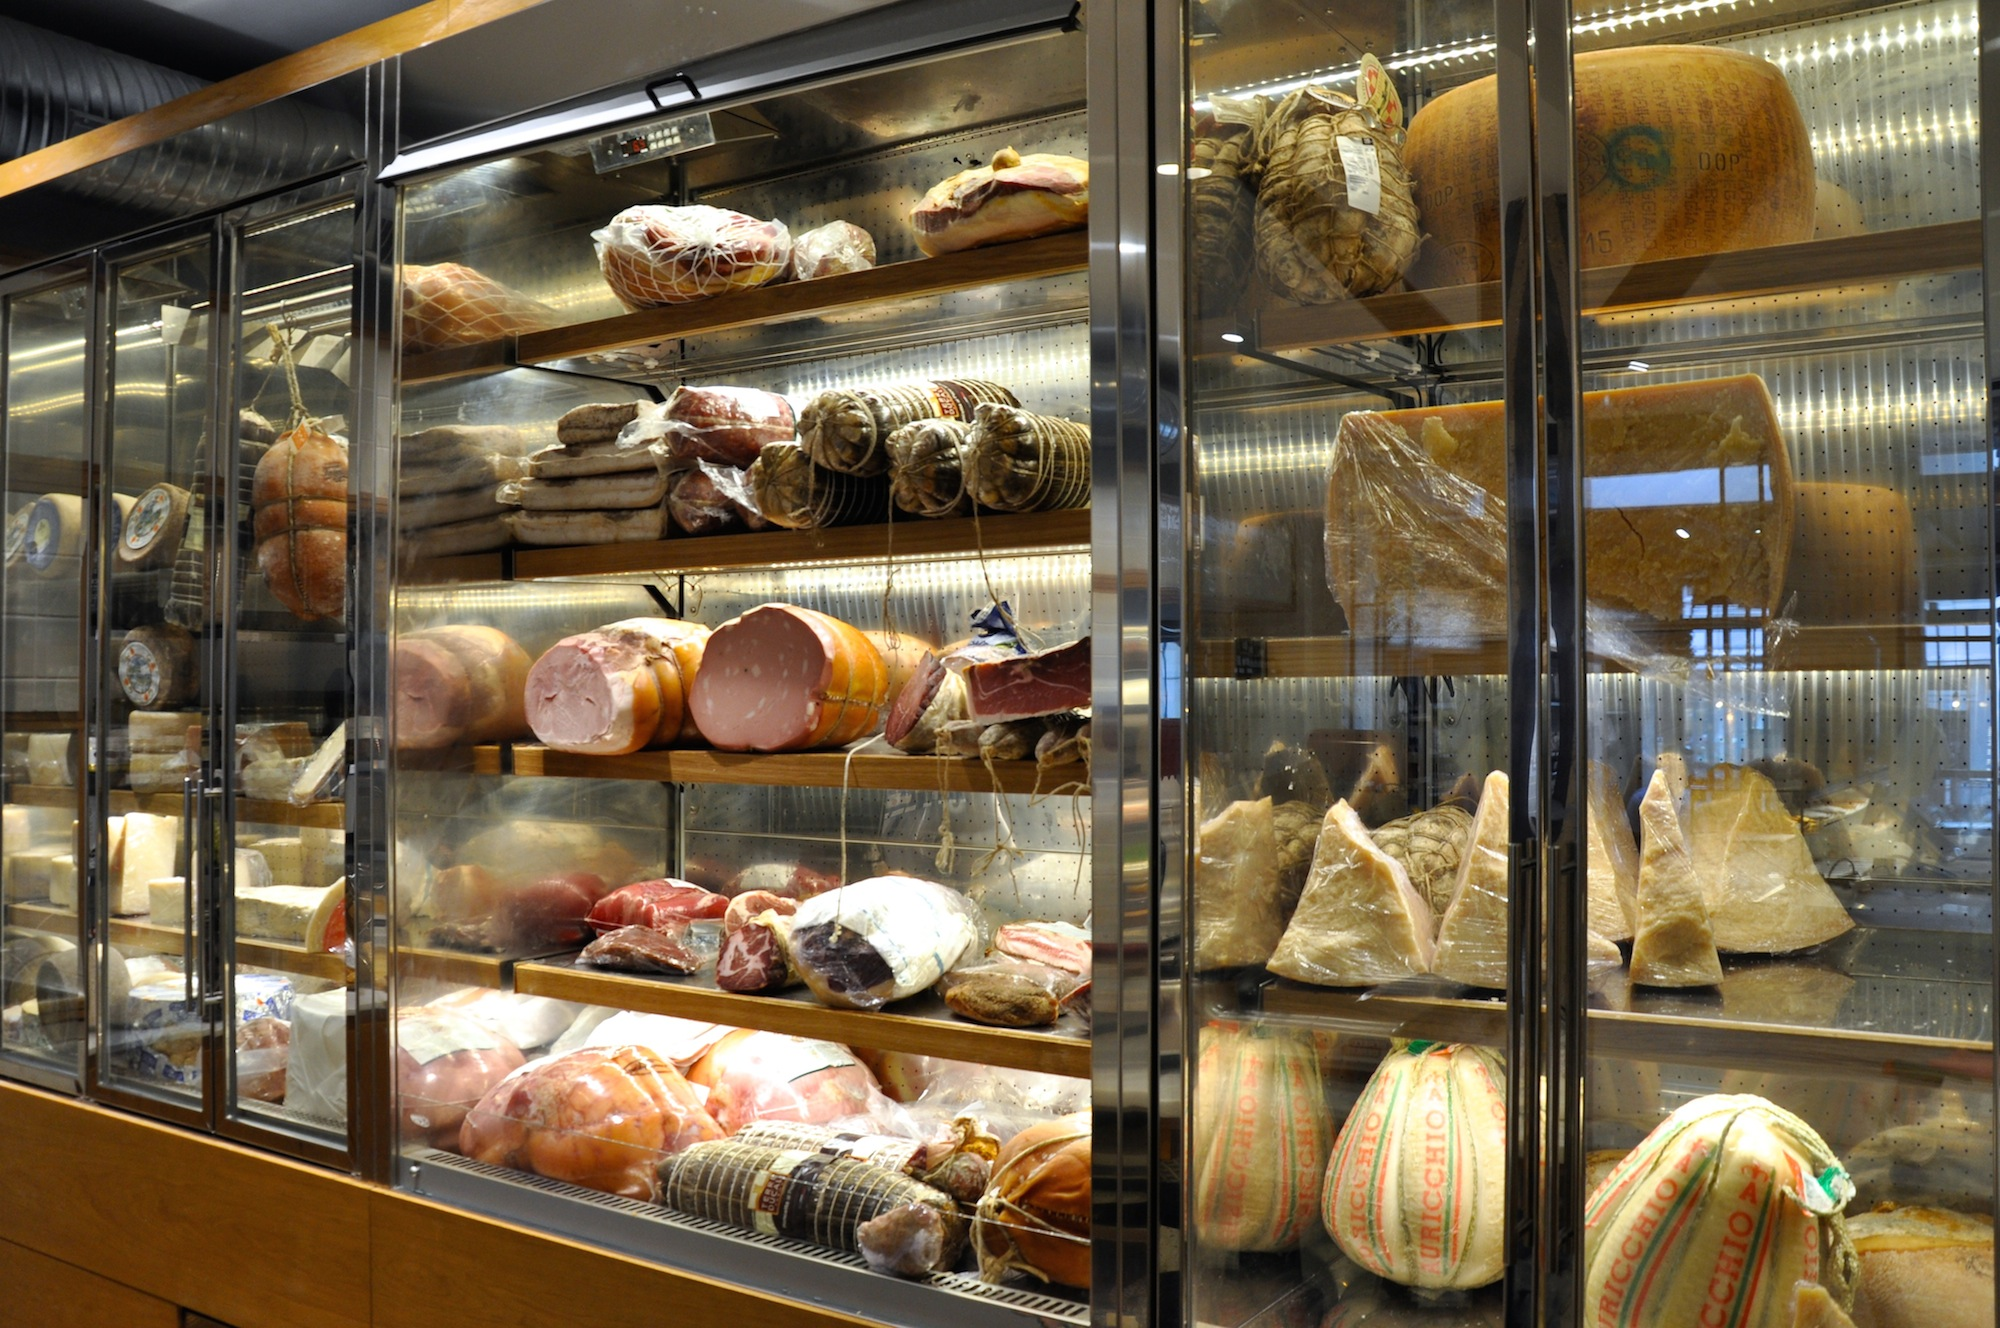 Hams and cheeses in fridges at Roberta Italian restaurant in Paris' Montmartre area.